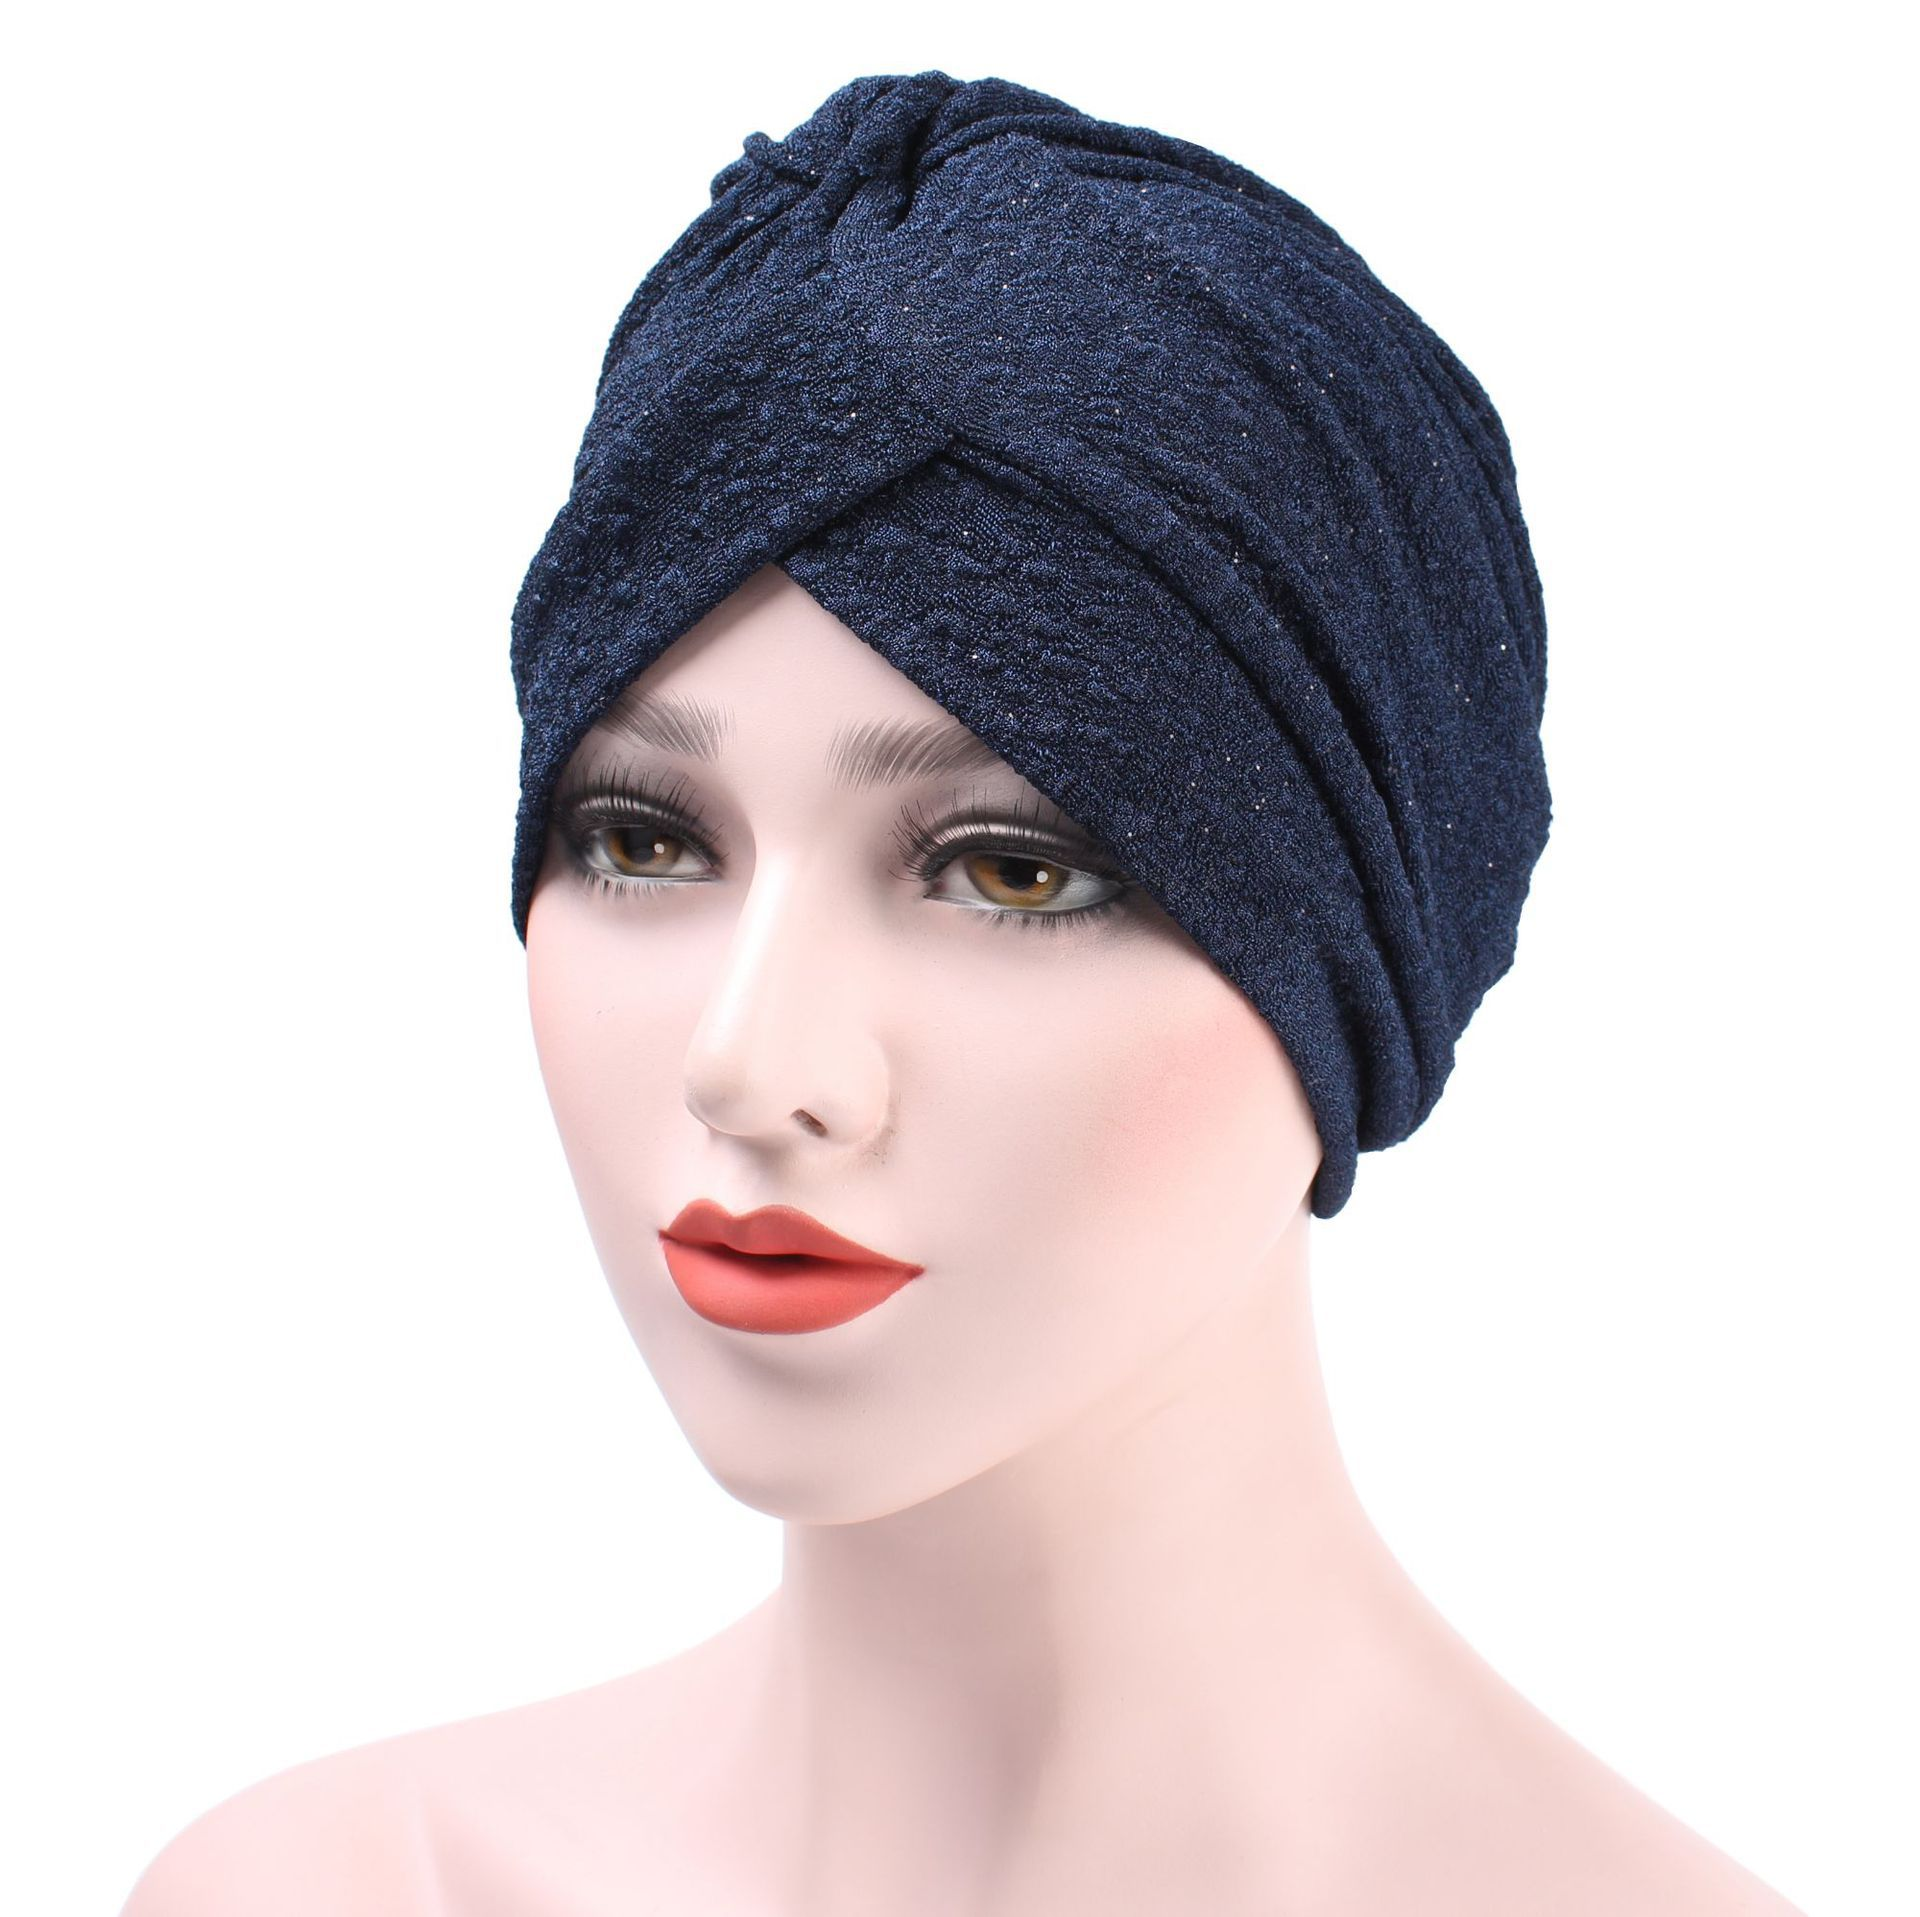 New Woman Turban Elastic Cloth Head Cap Hat Chemo Ladies Hair Accessories  Muslim Scarf Cap-in Islamic Clothing from Novelty   Special Use on  Aliexpress.com ... 1f358328cfc5